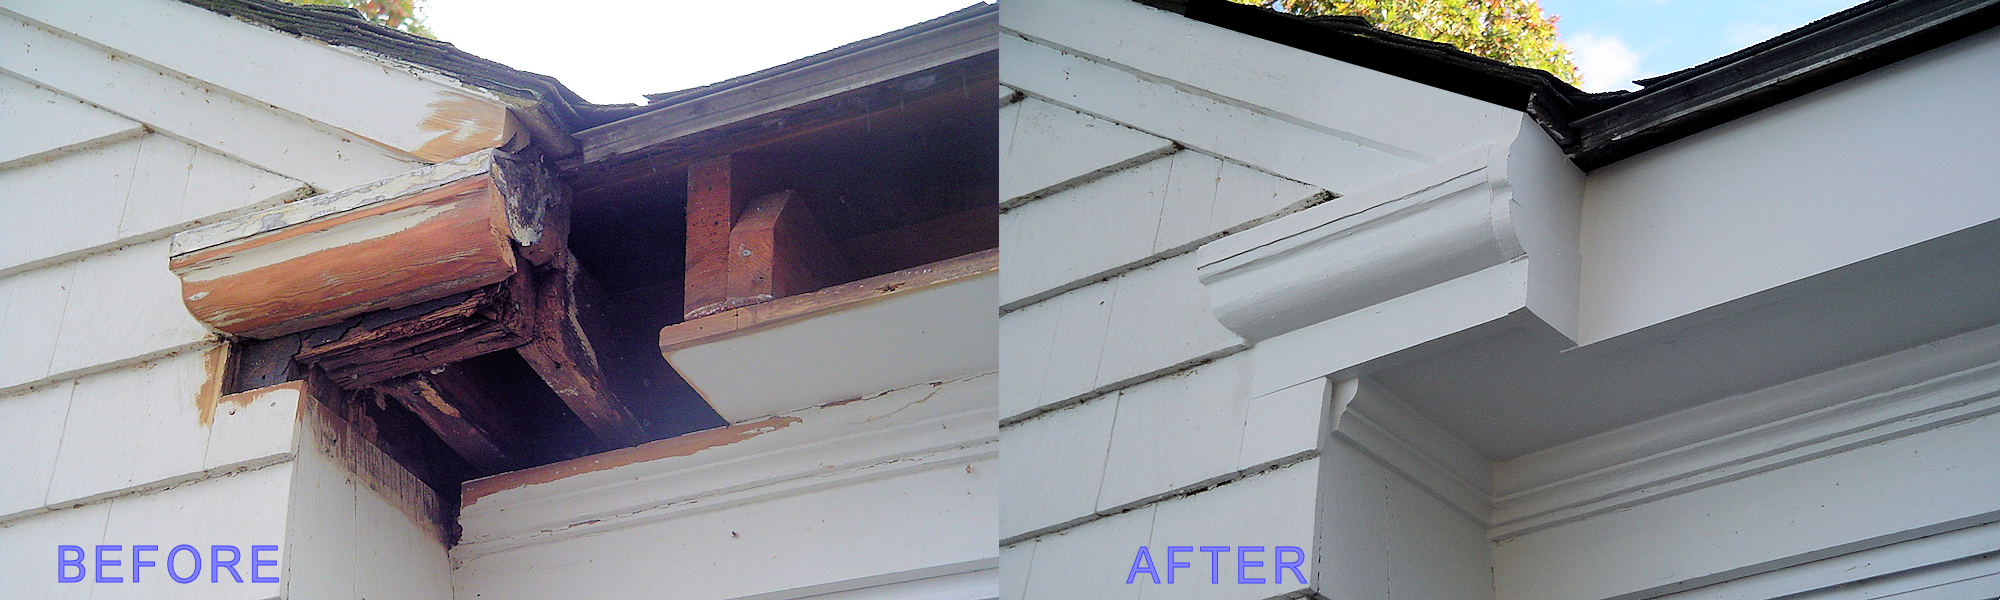 Light home repairs Before and after